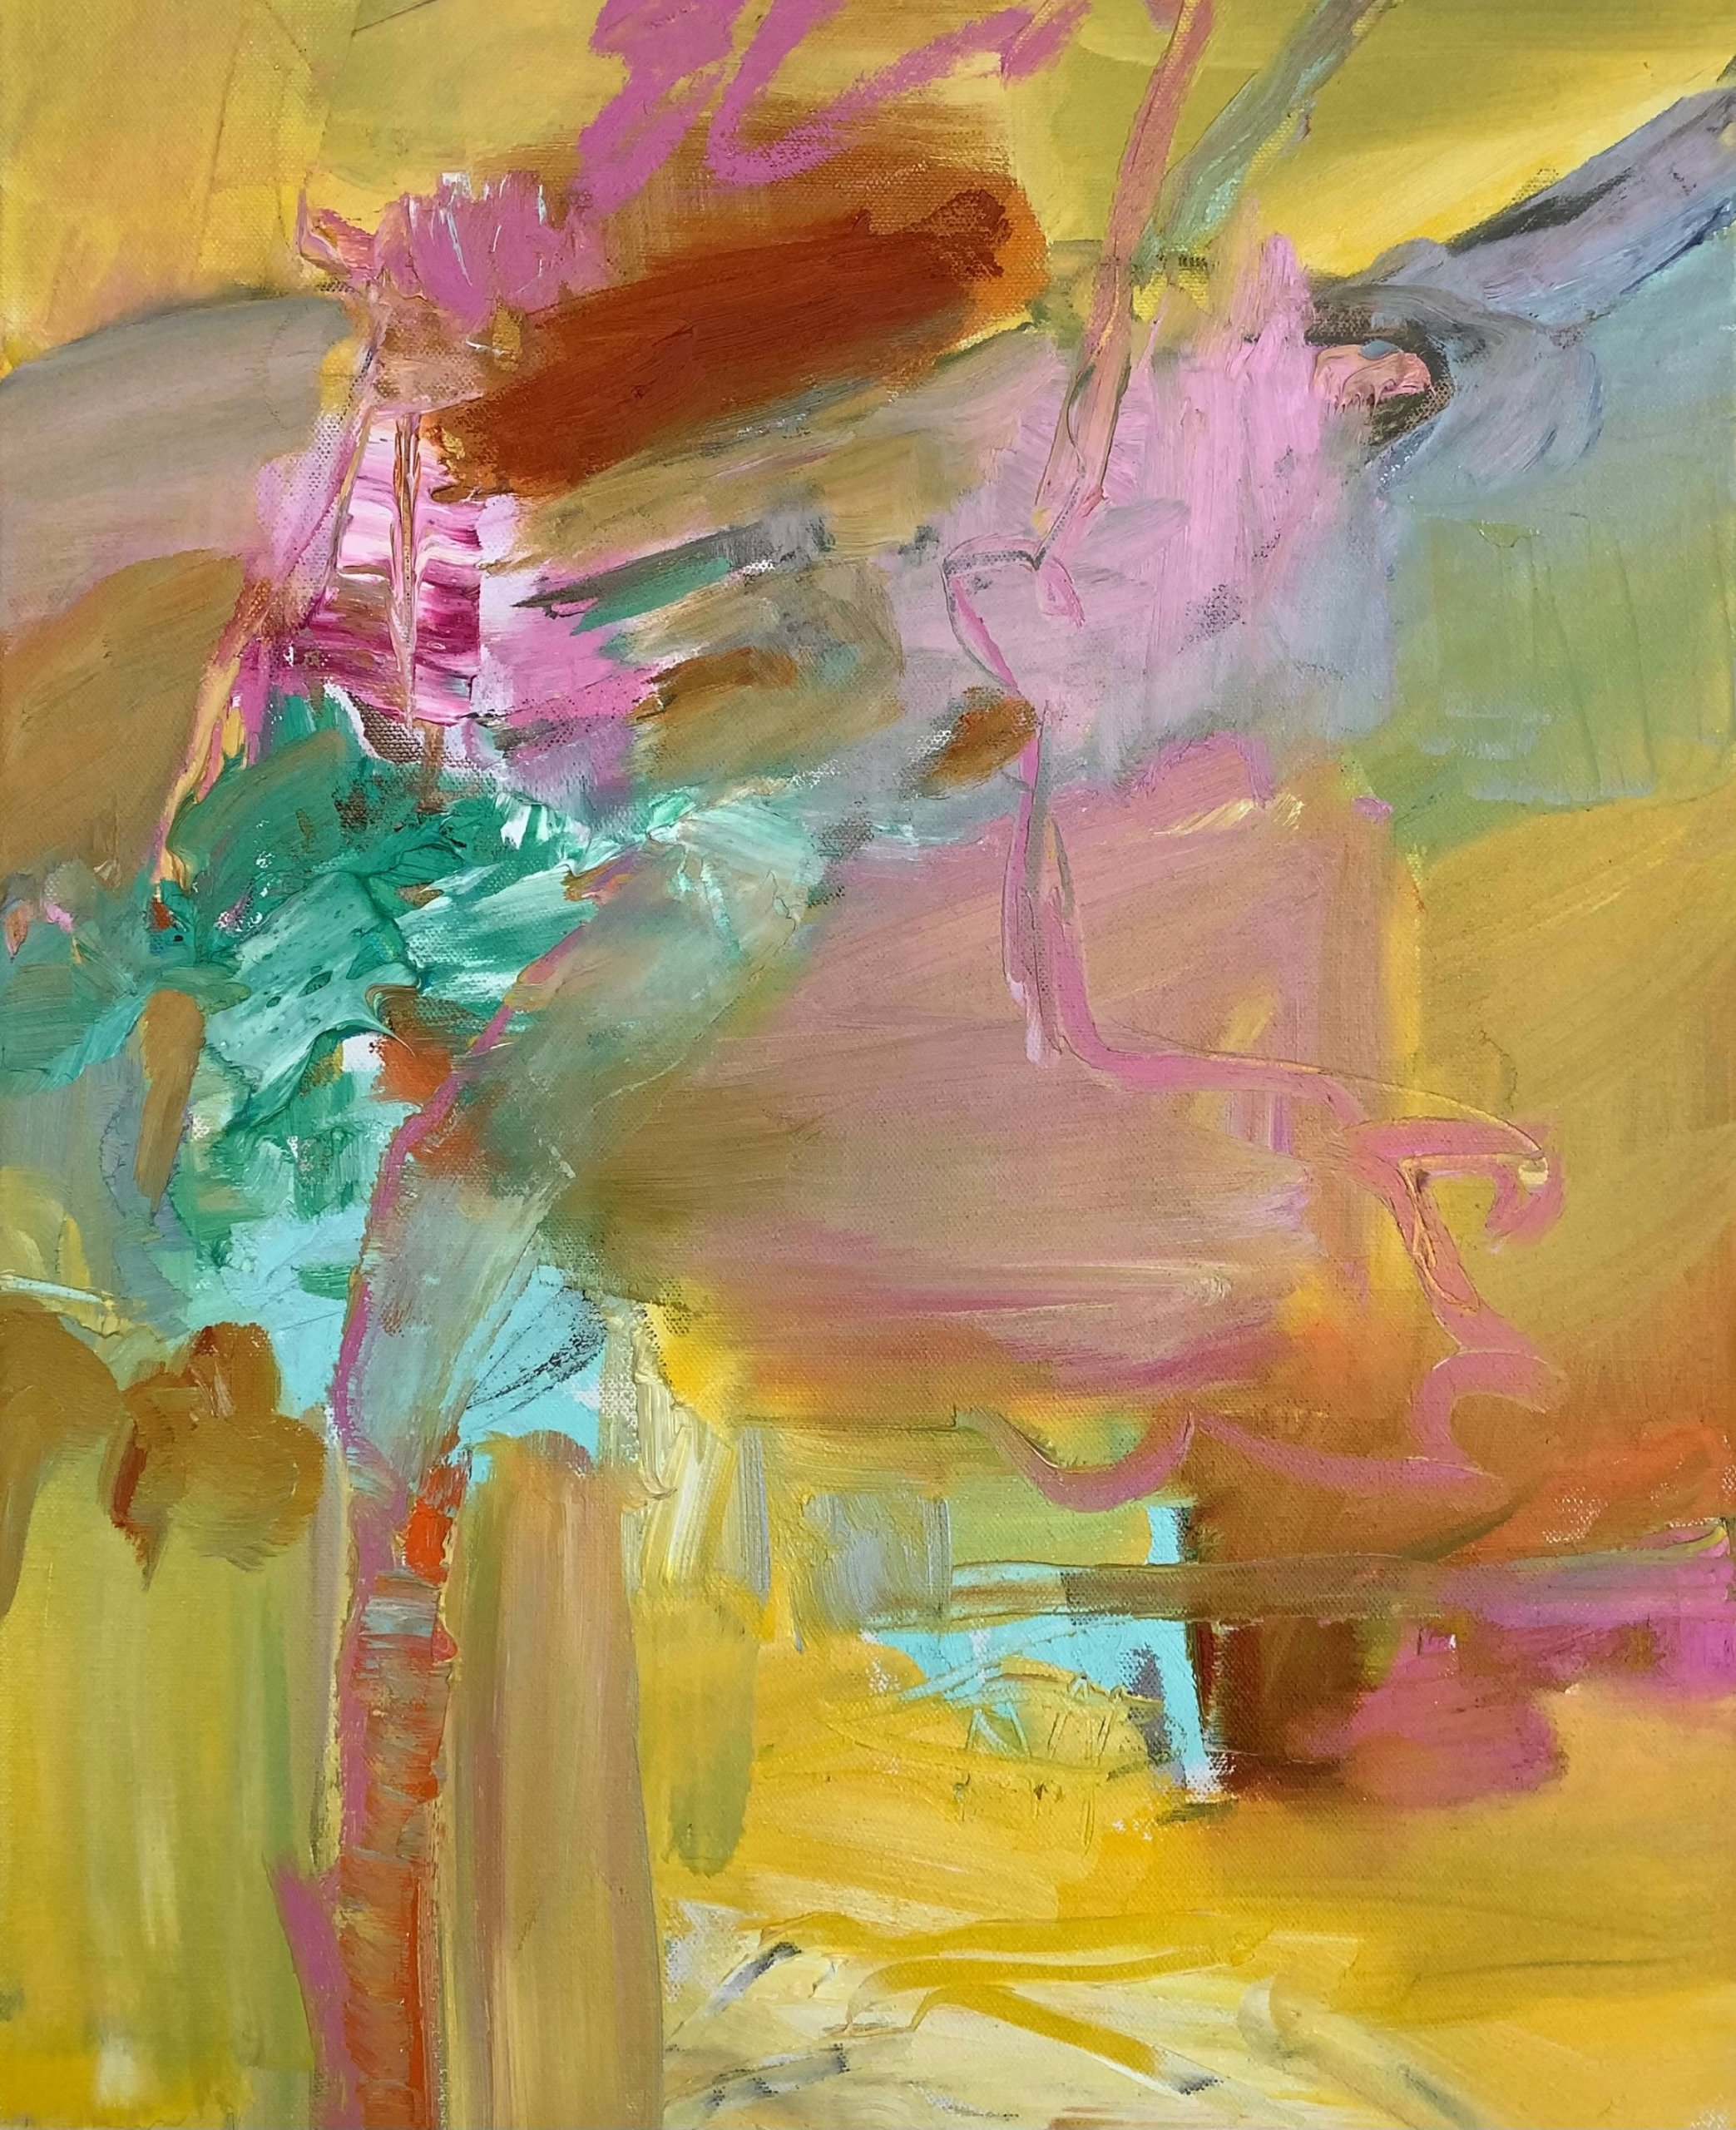 Sharon-Barr-See-You-At-Sunrise-2021-Oil-On-Canvas-20x16-Online-Art-Galleries